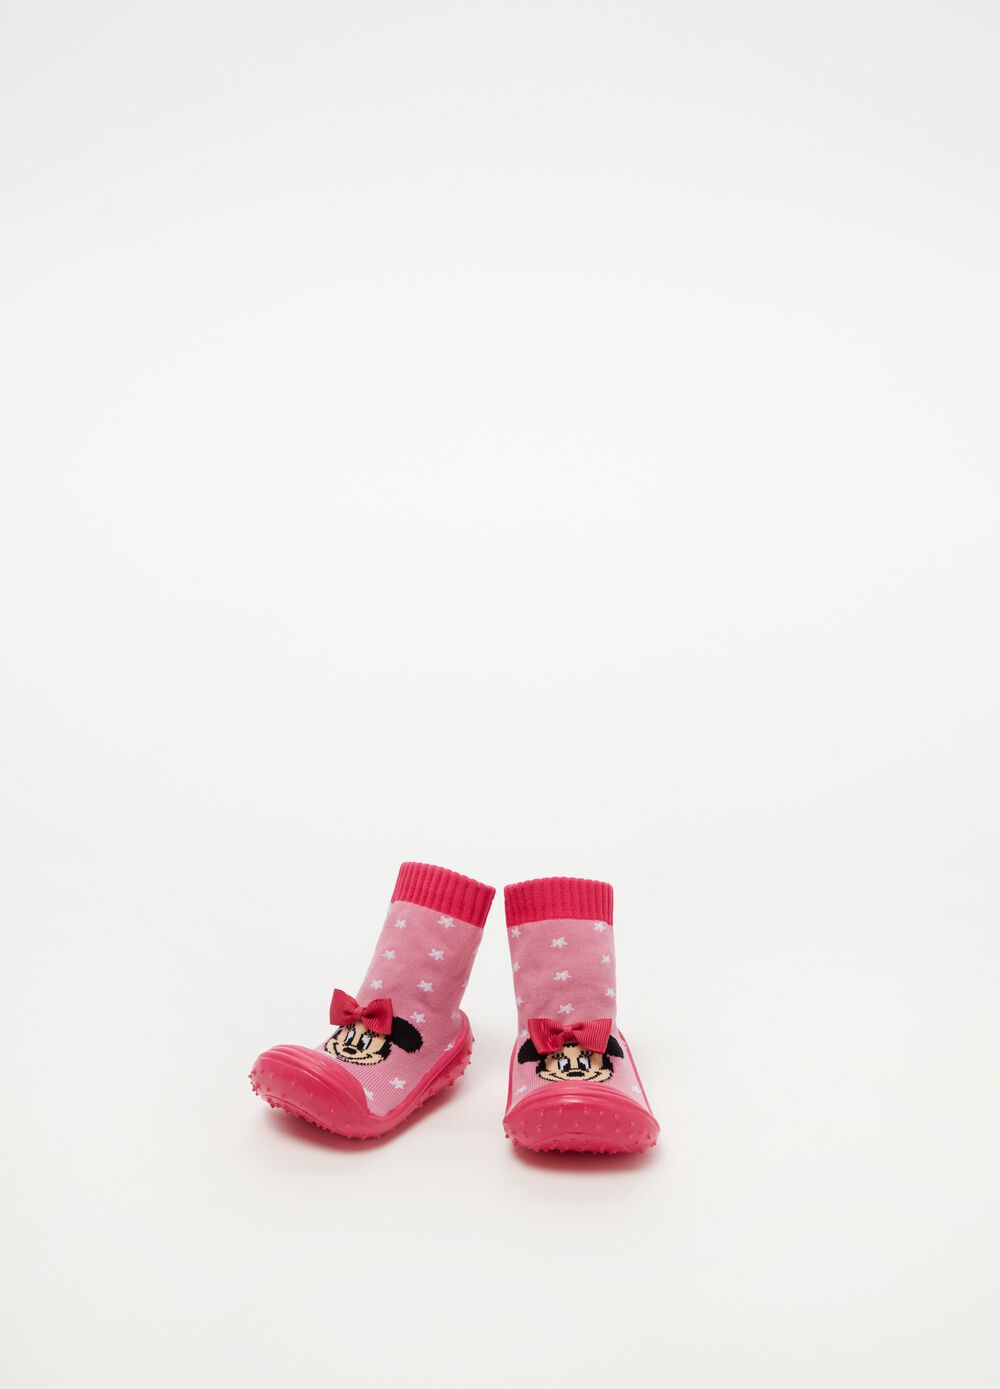 Shoes with bows and Minnie Mouse pattern